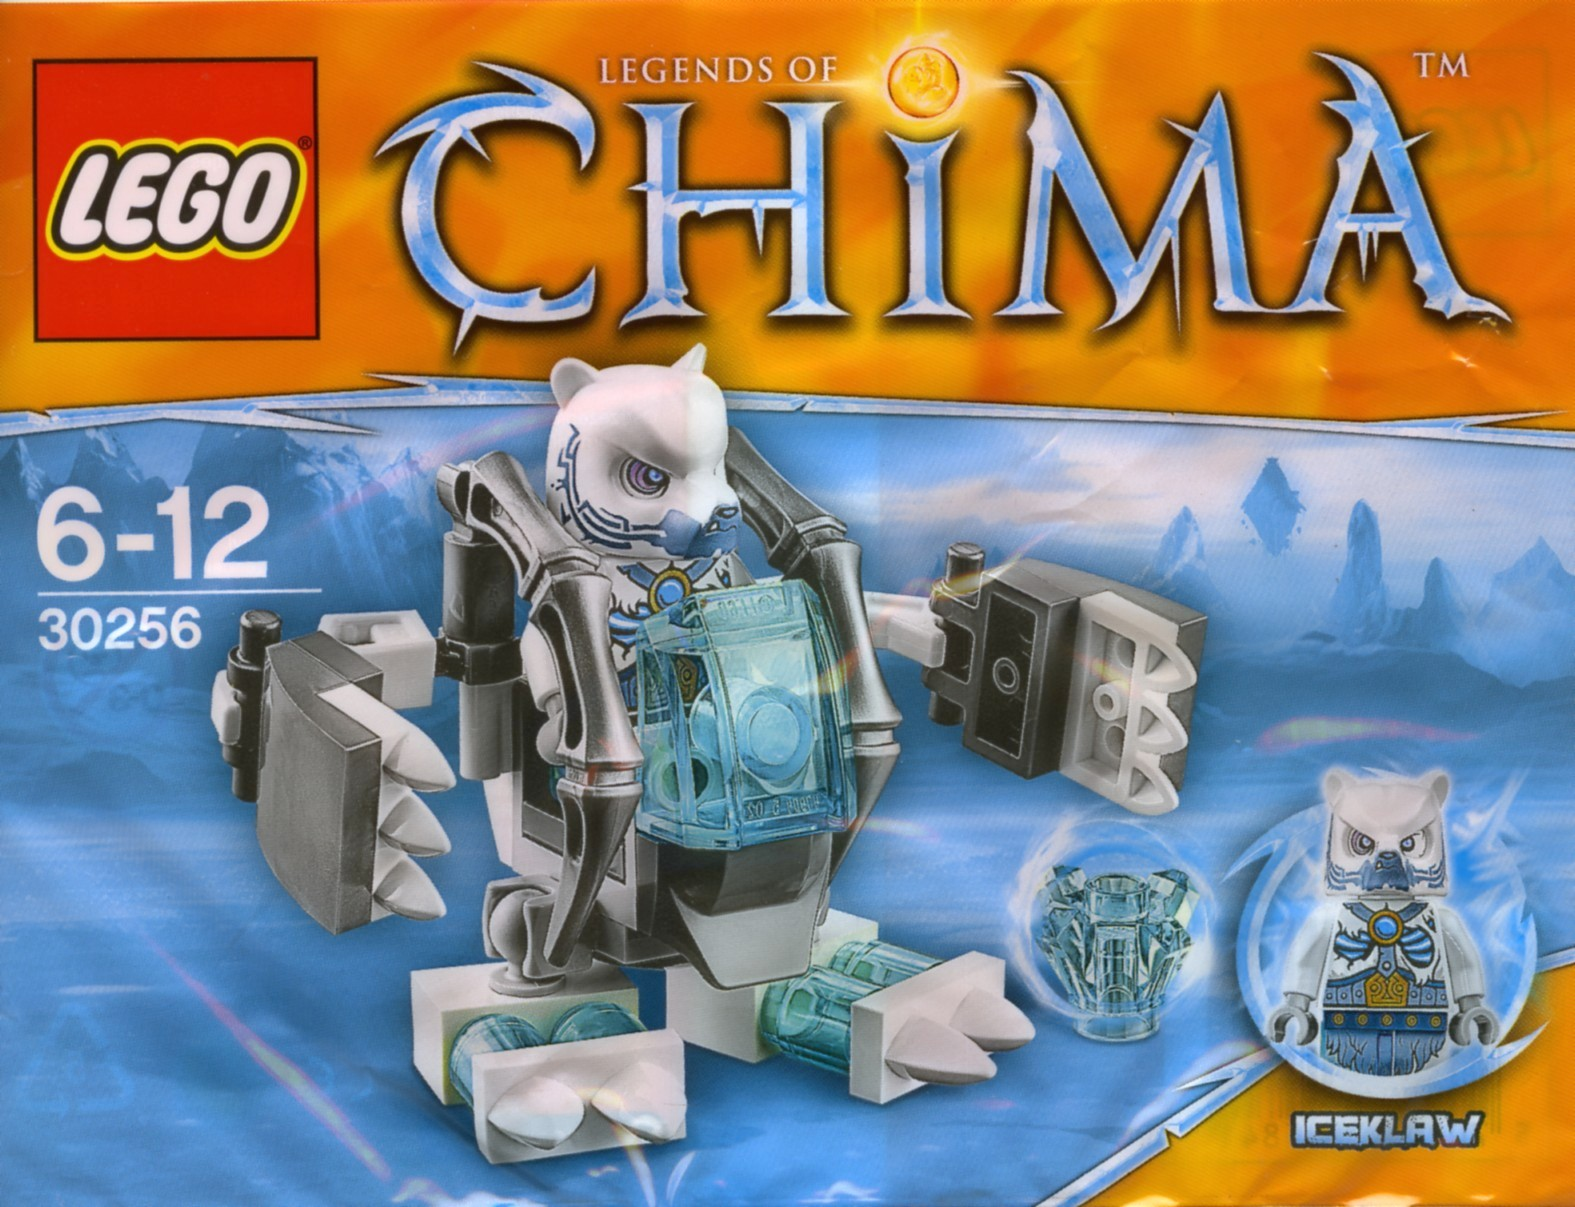 Database And Guide Legends BricksetLego Set Chima2015 Of rxhsCtQd